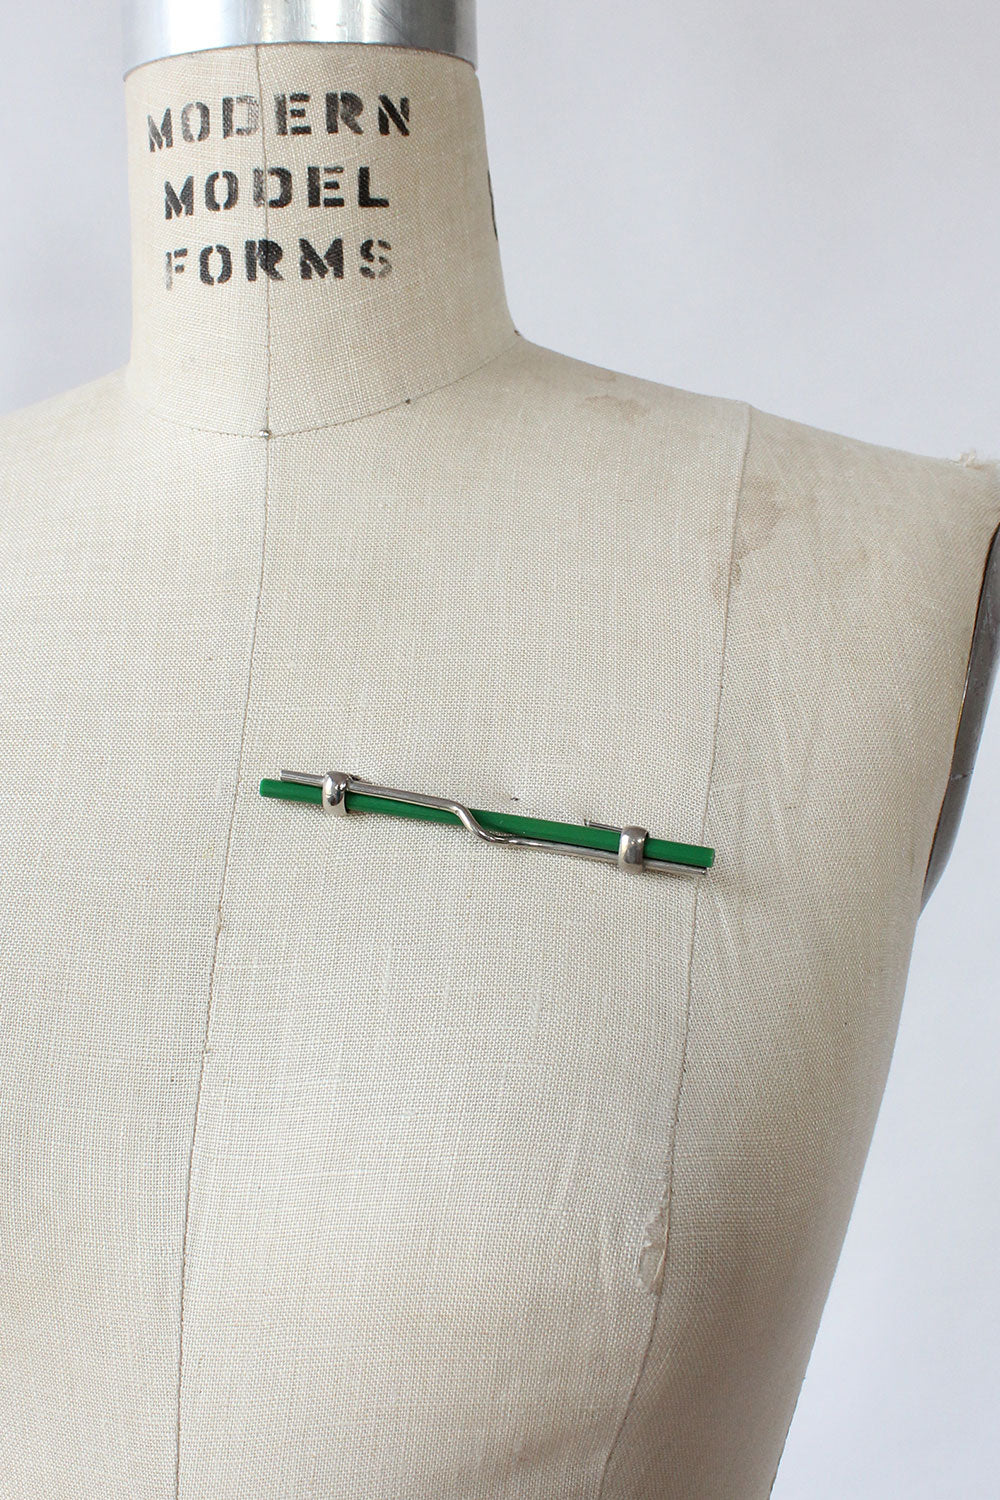 Modernist Green Bar Brooch